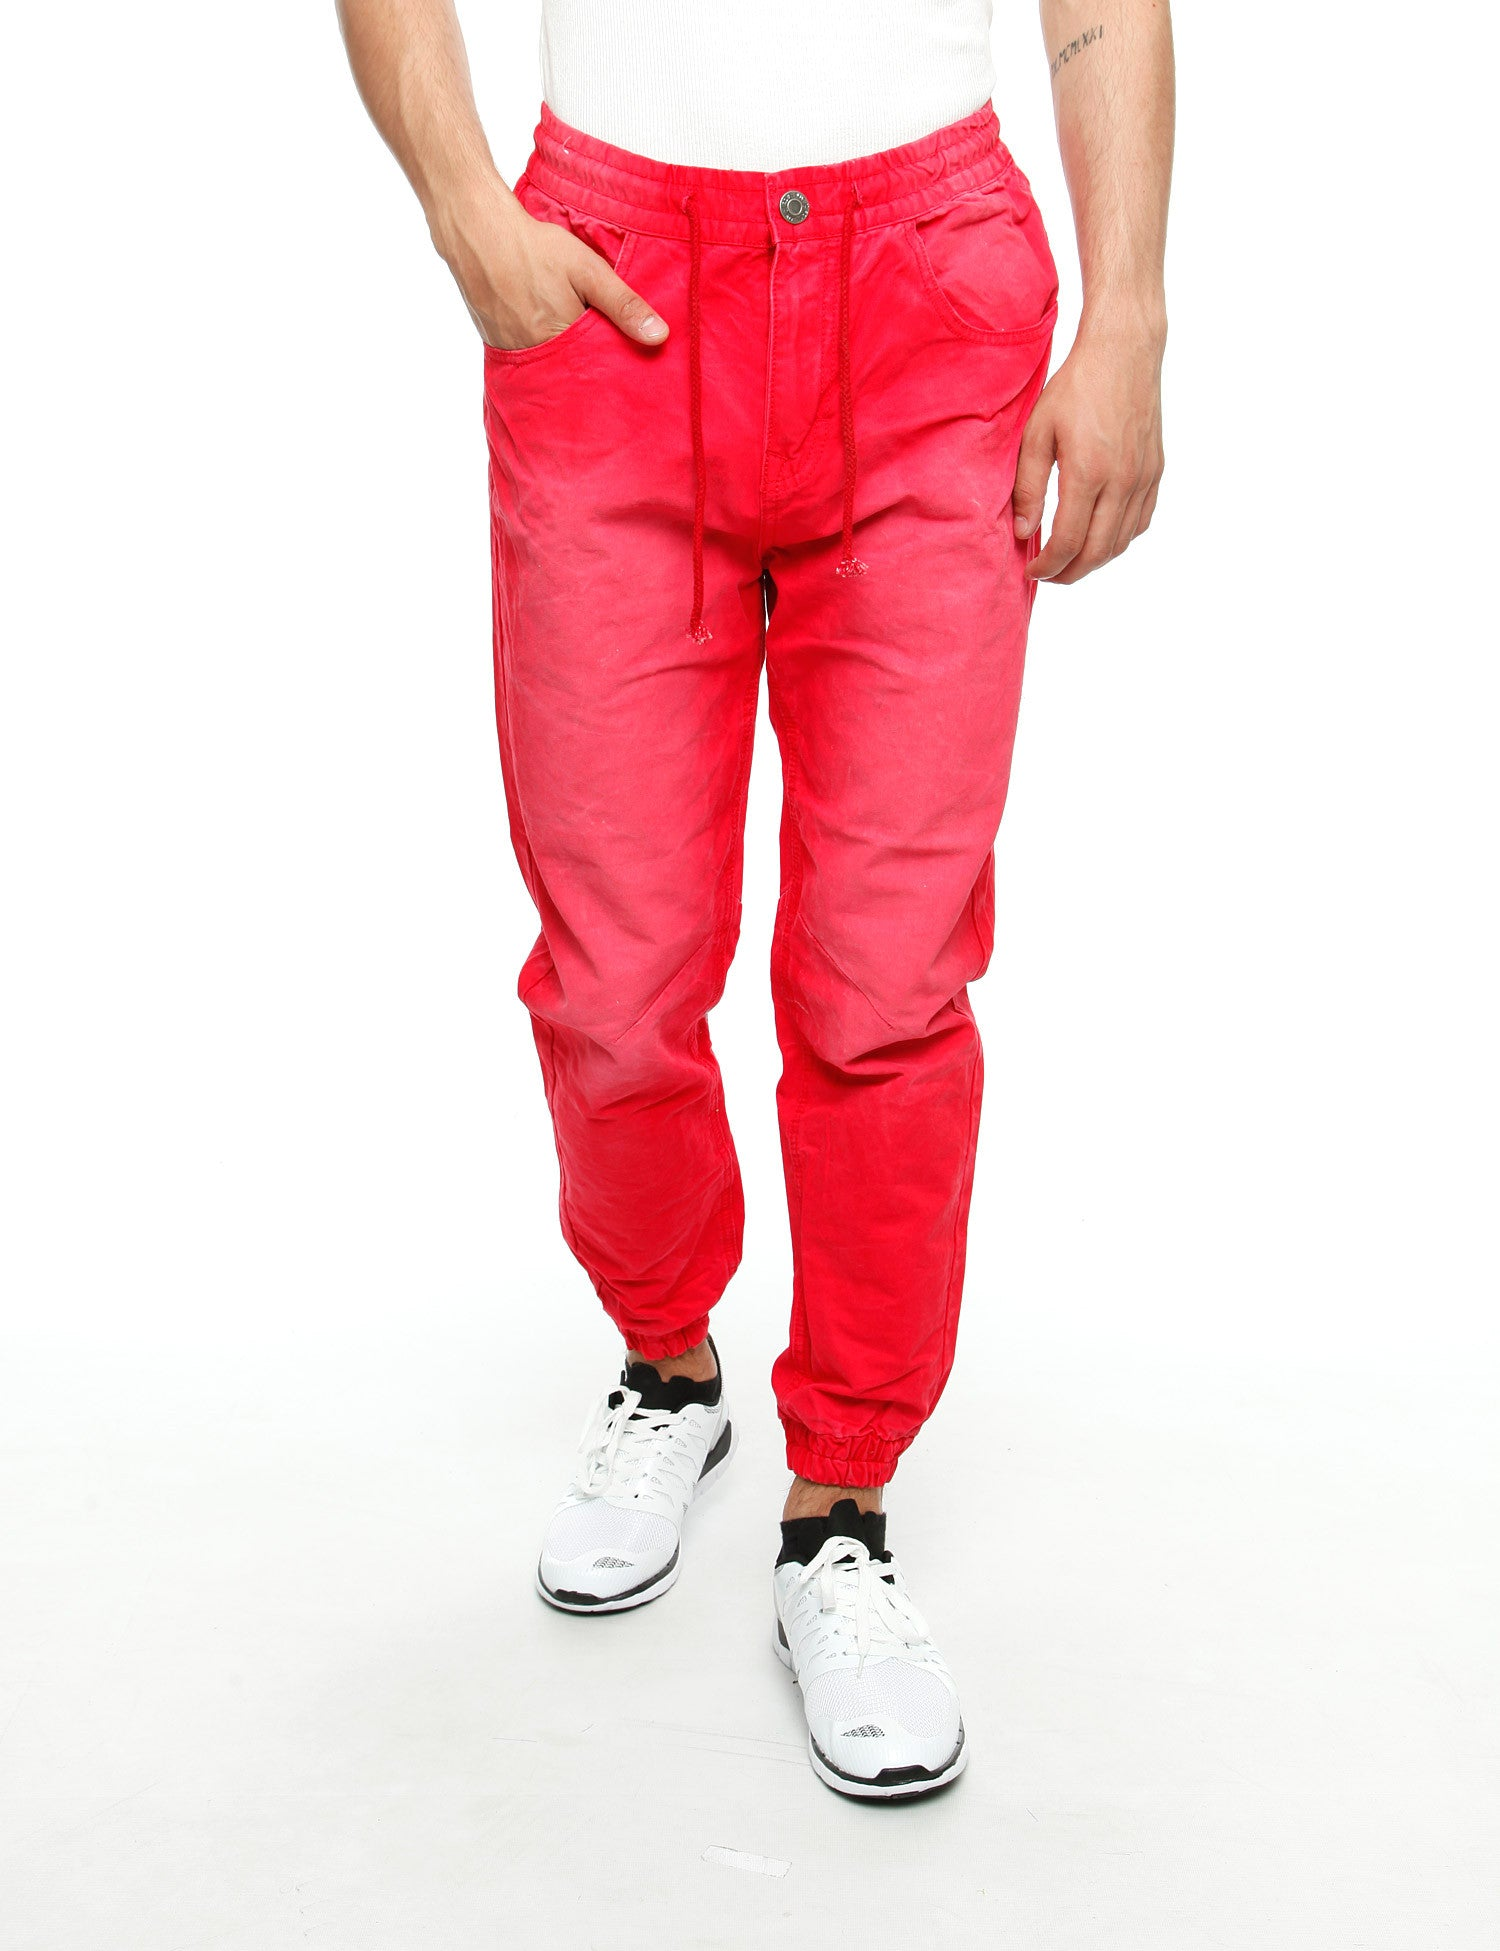 Royal Blue Jogger Jeans 8394 Red